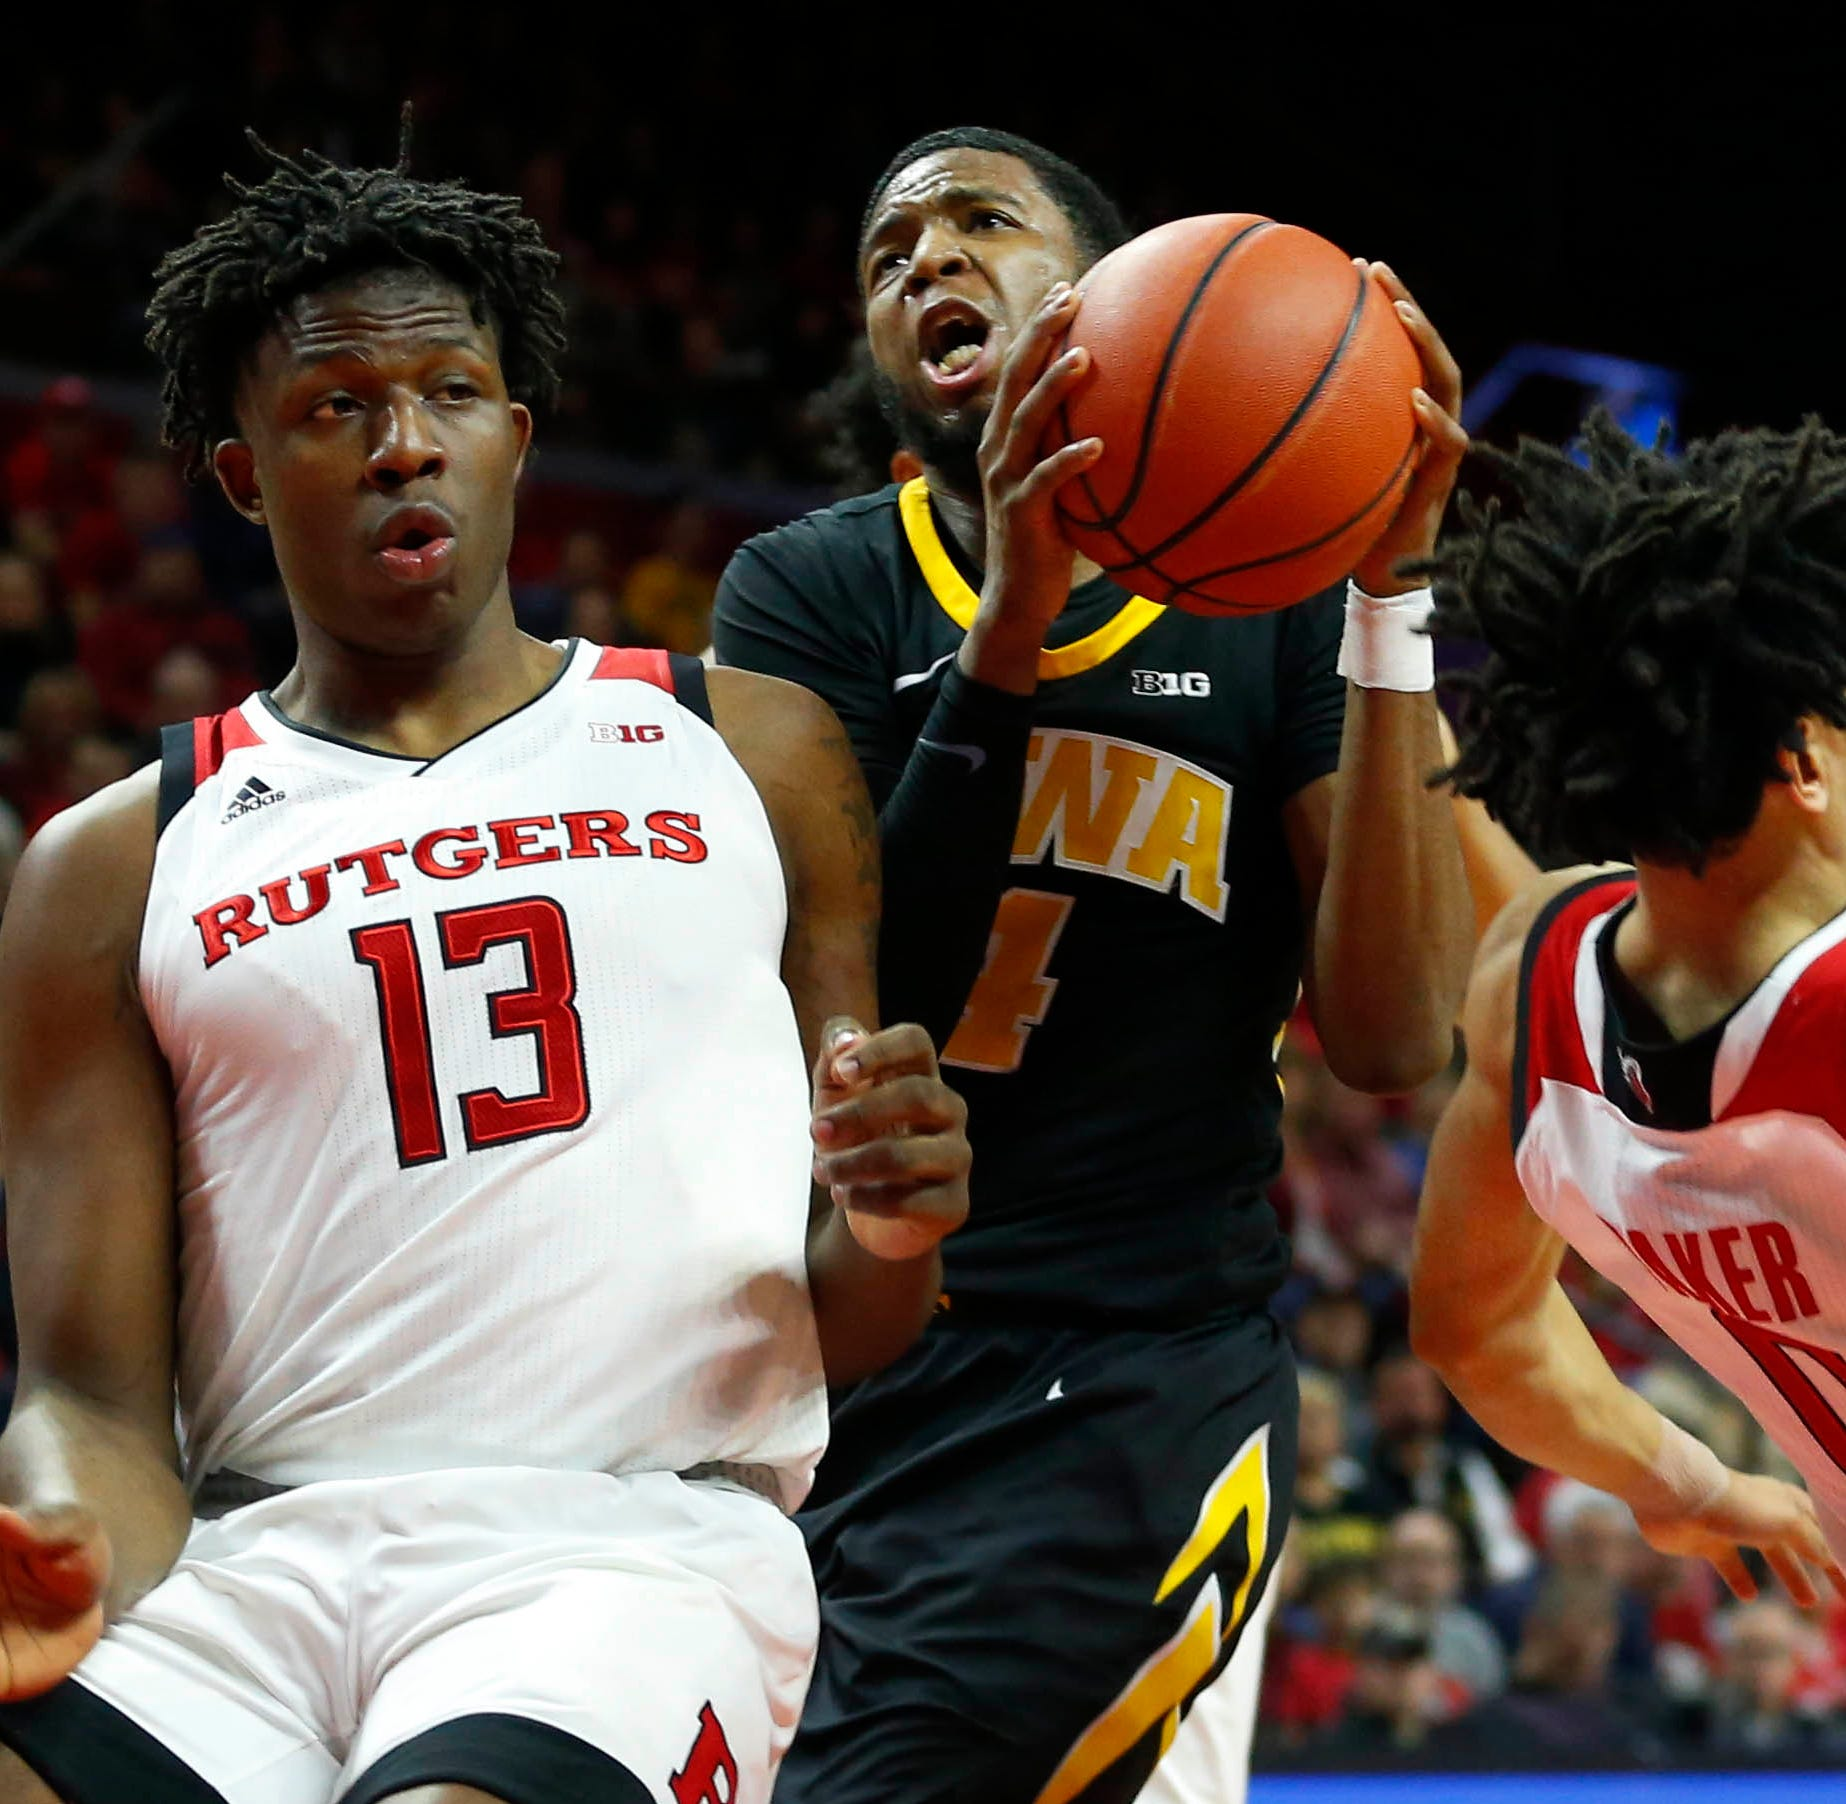 Rutgers basketball loses heartbreaker on crazy Iowa shot just before buzzer